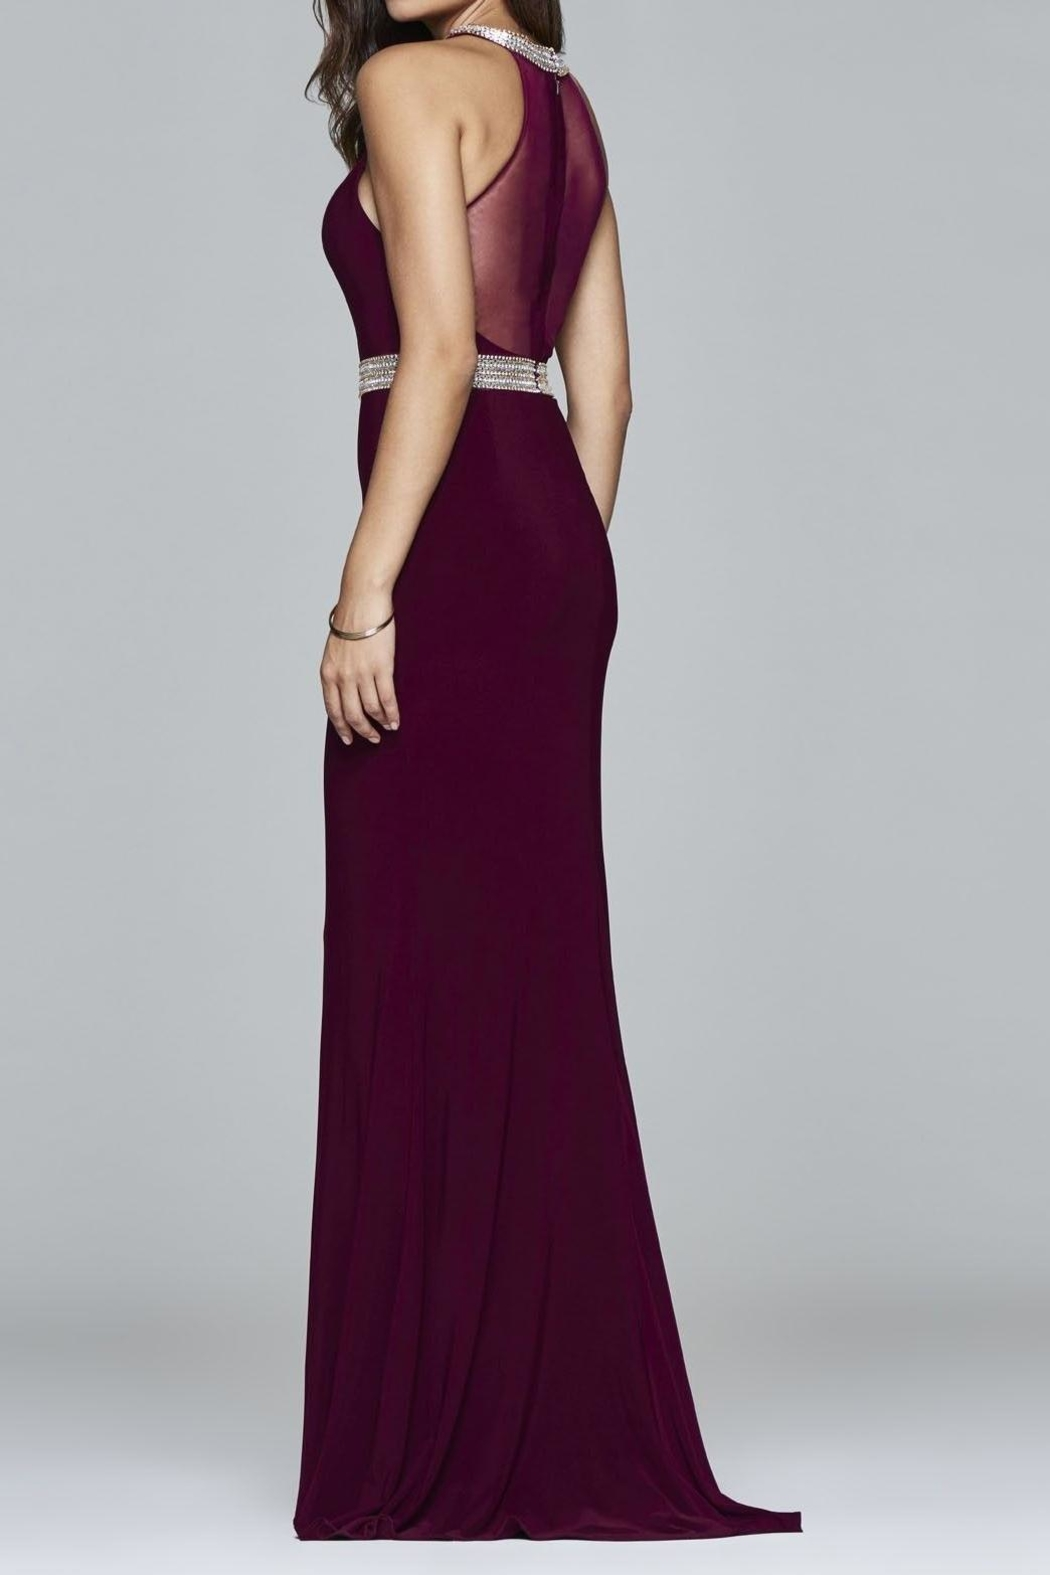 Faviana Timeless Bordeaux Gown - Front Full Image